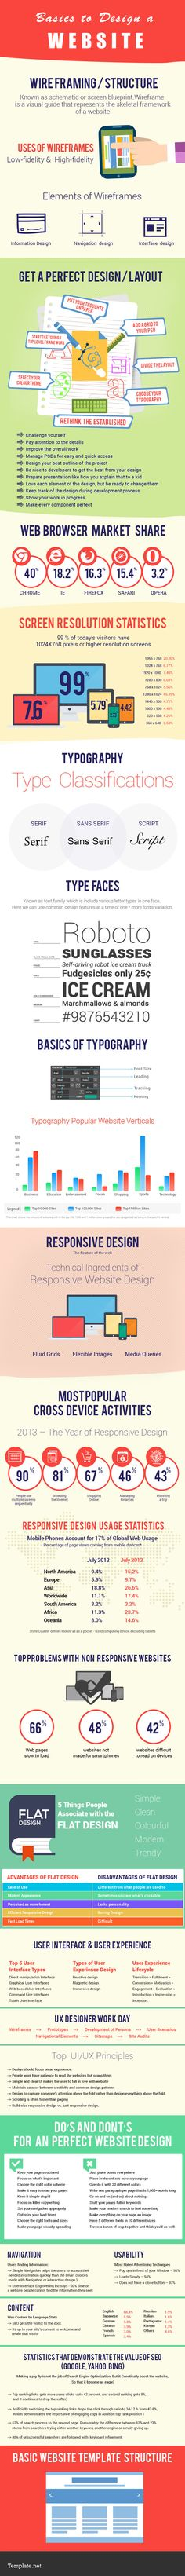 [Infographie] Les bases du webdesign mobile || Basics to Design a Website Infographic-final #digital #marketing #UX #UI